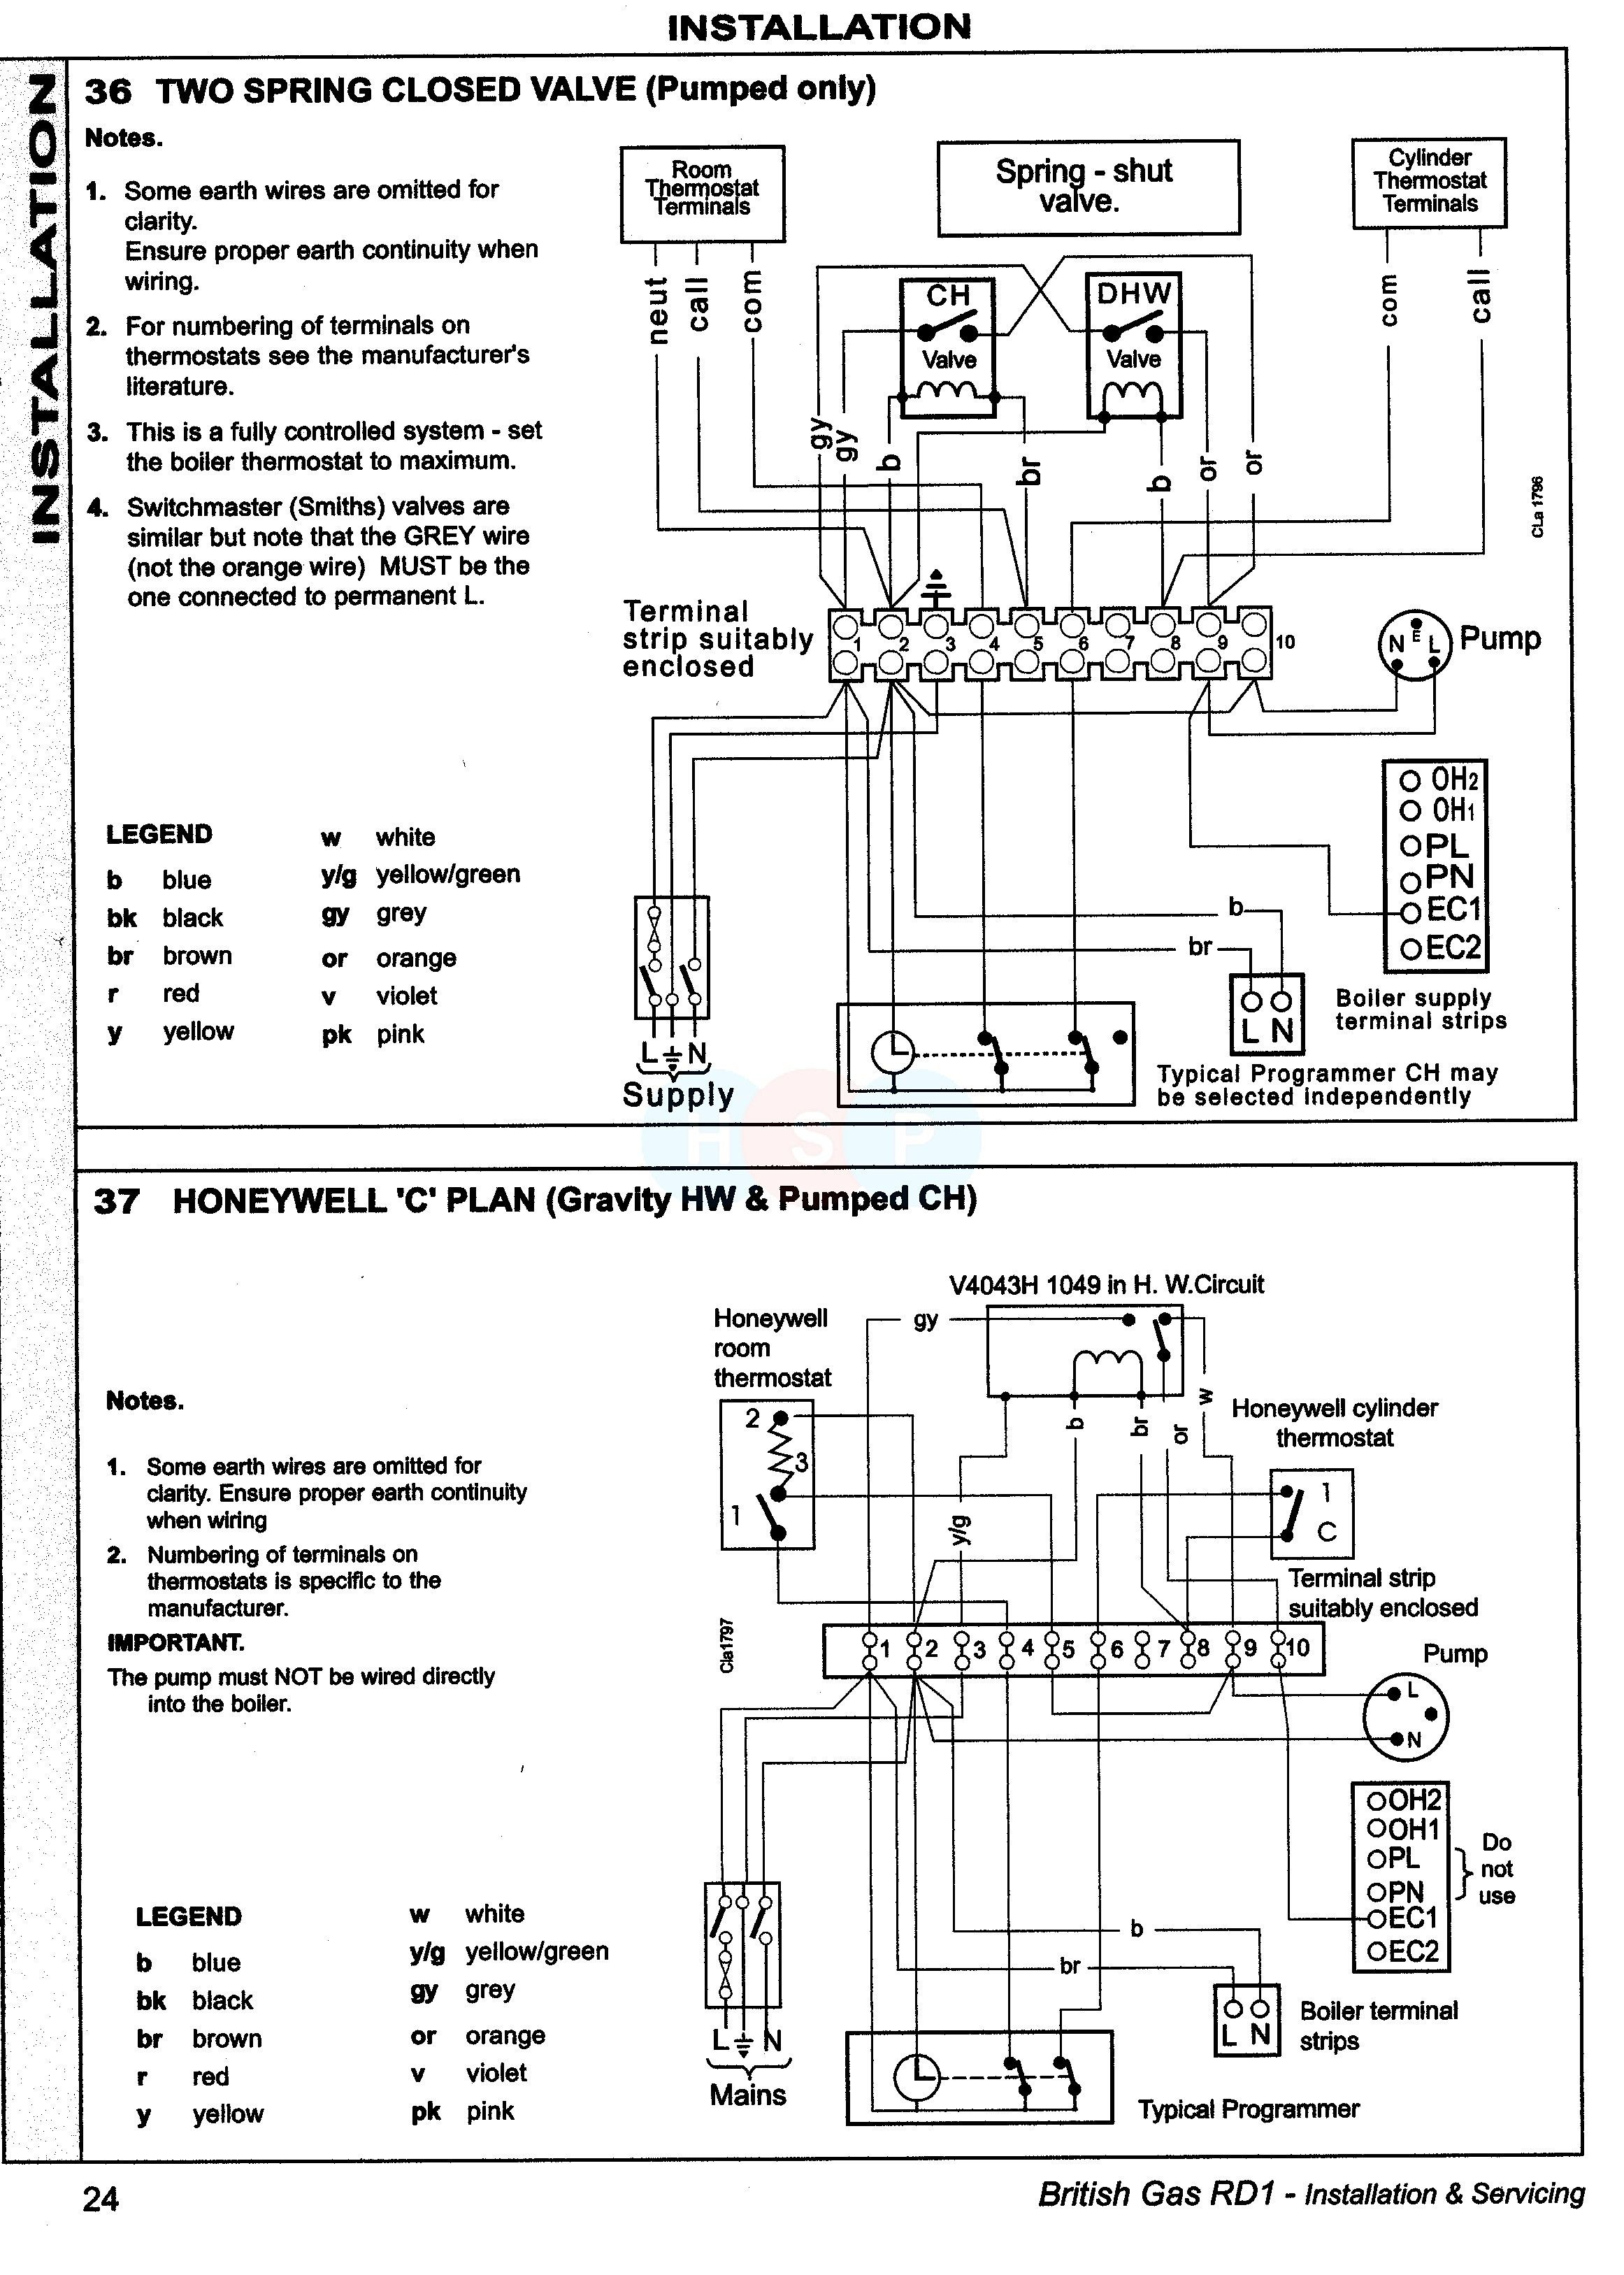 Lovely Wiring Diagram for Honeywell S Plan #diagrams #